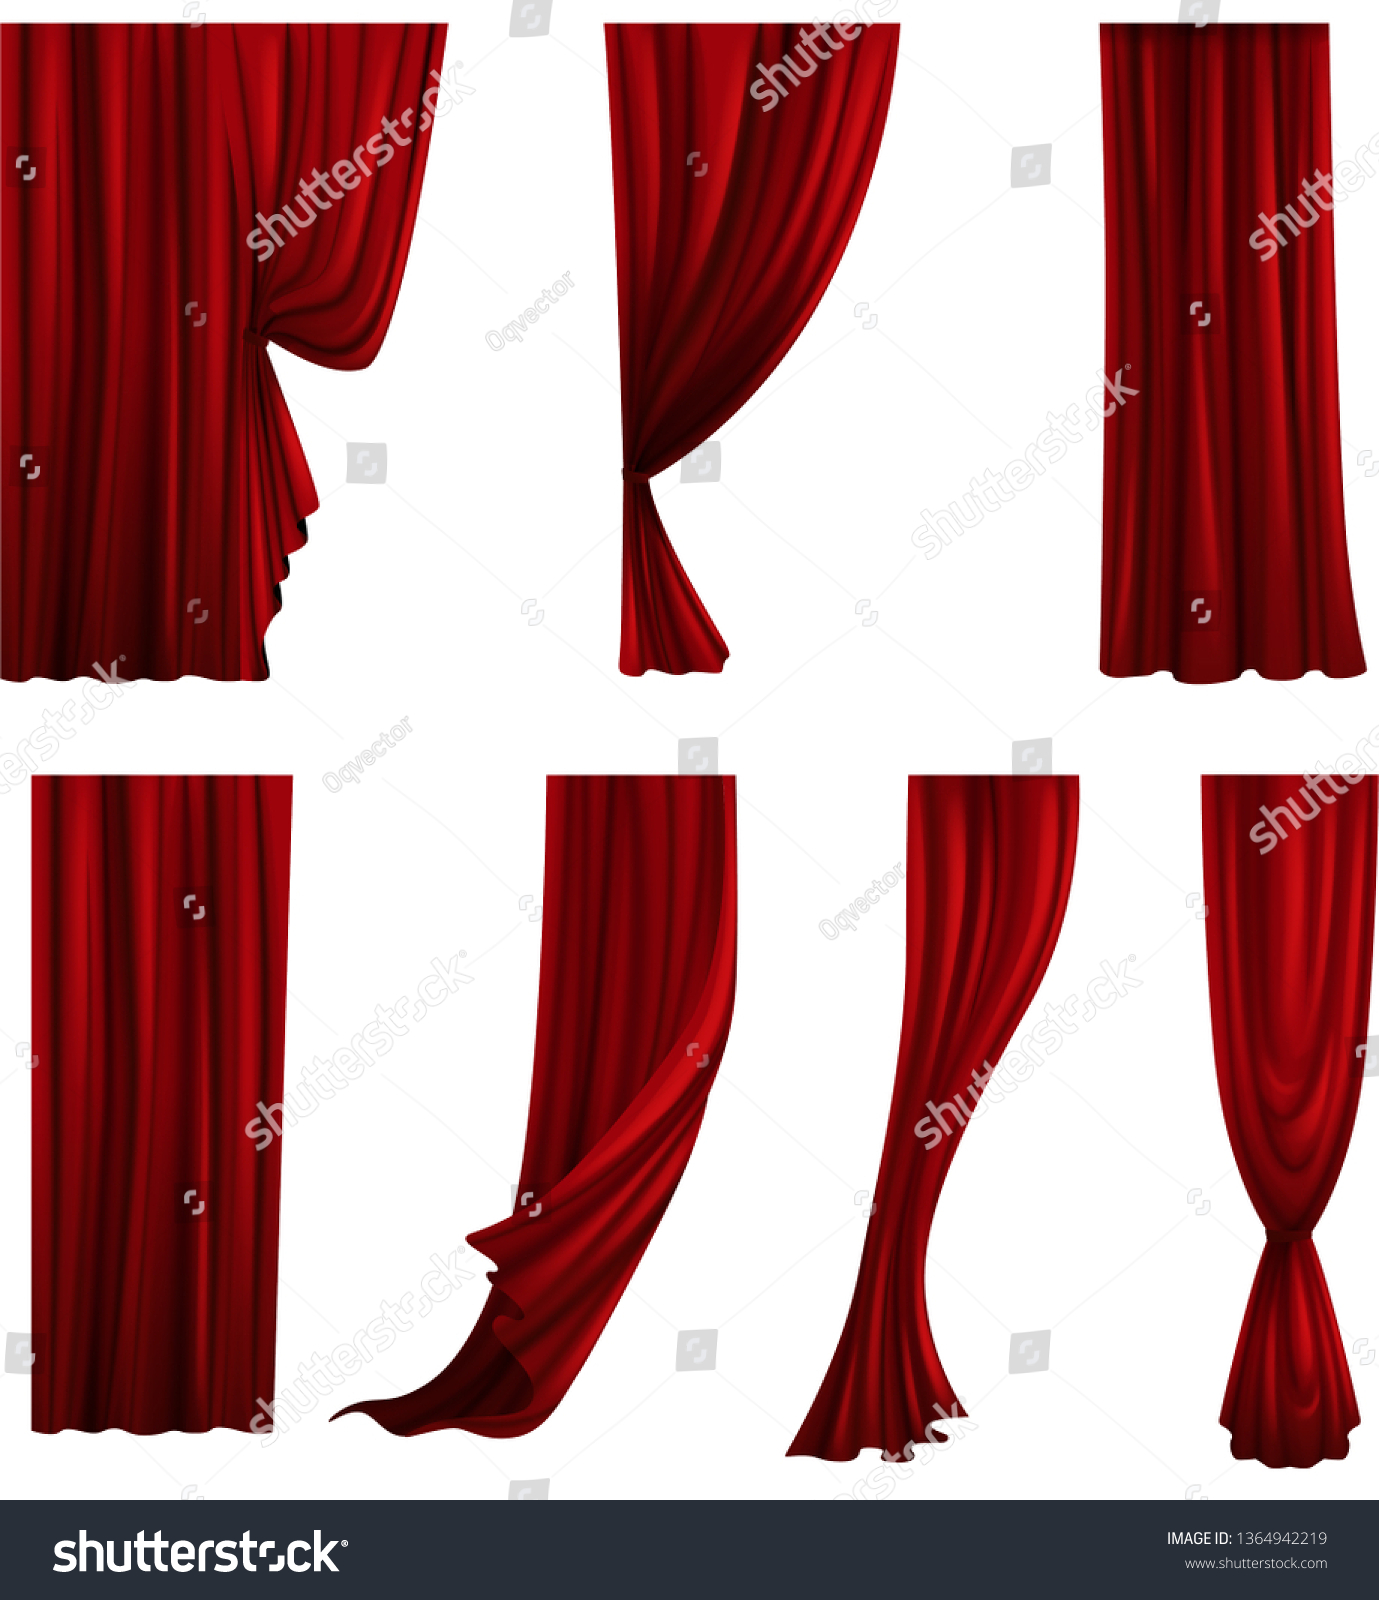 Download transparent red curtains with tassels clipart png photo | TOPpng